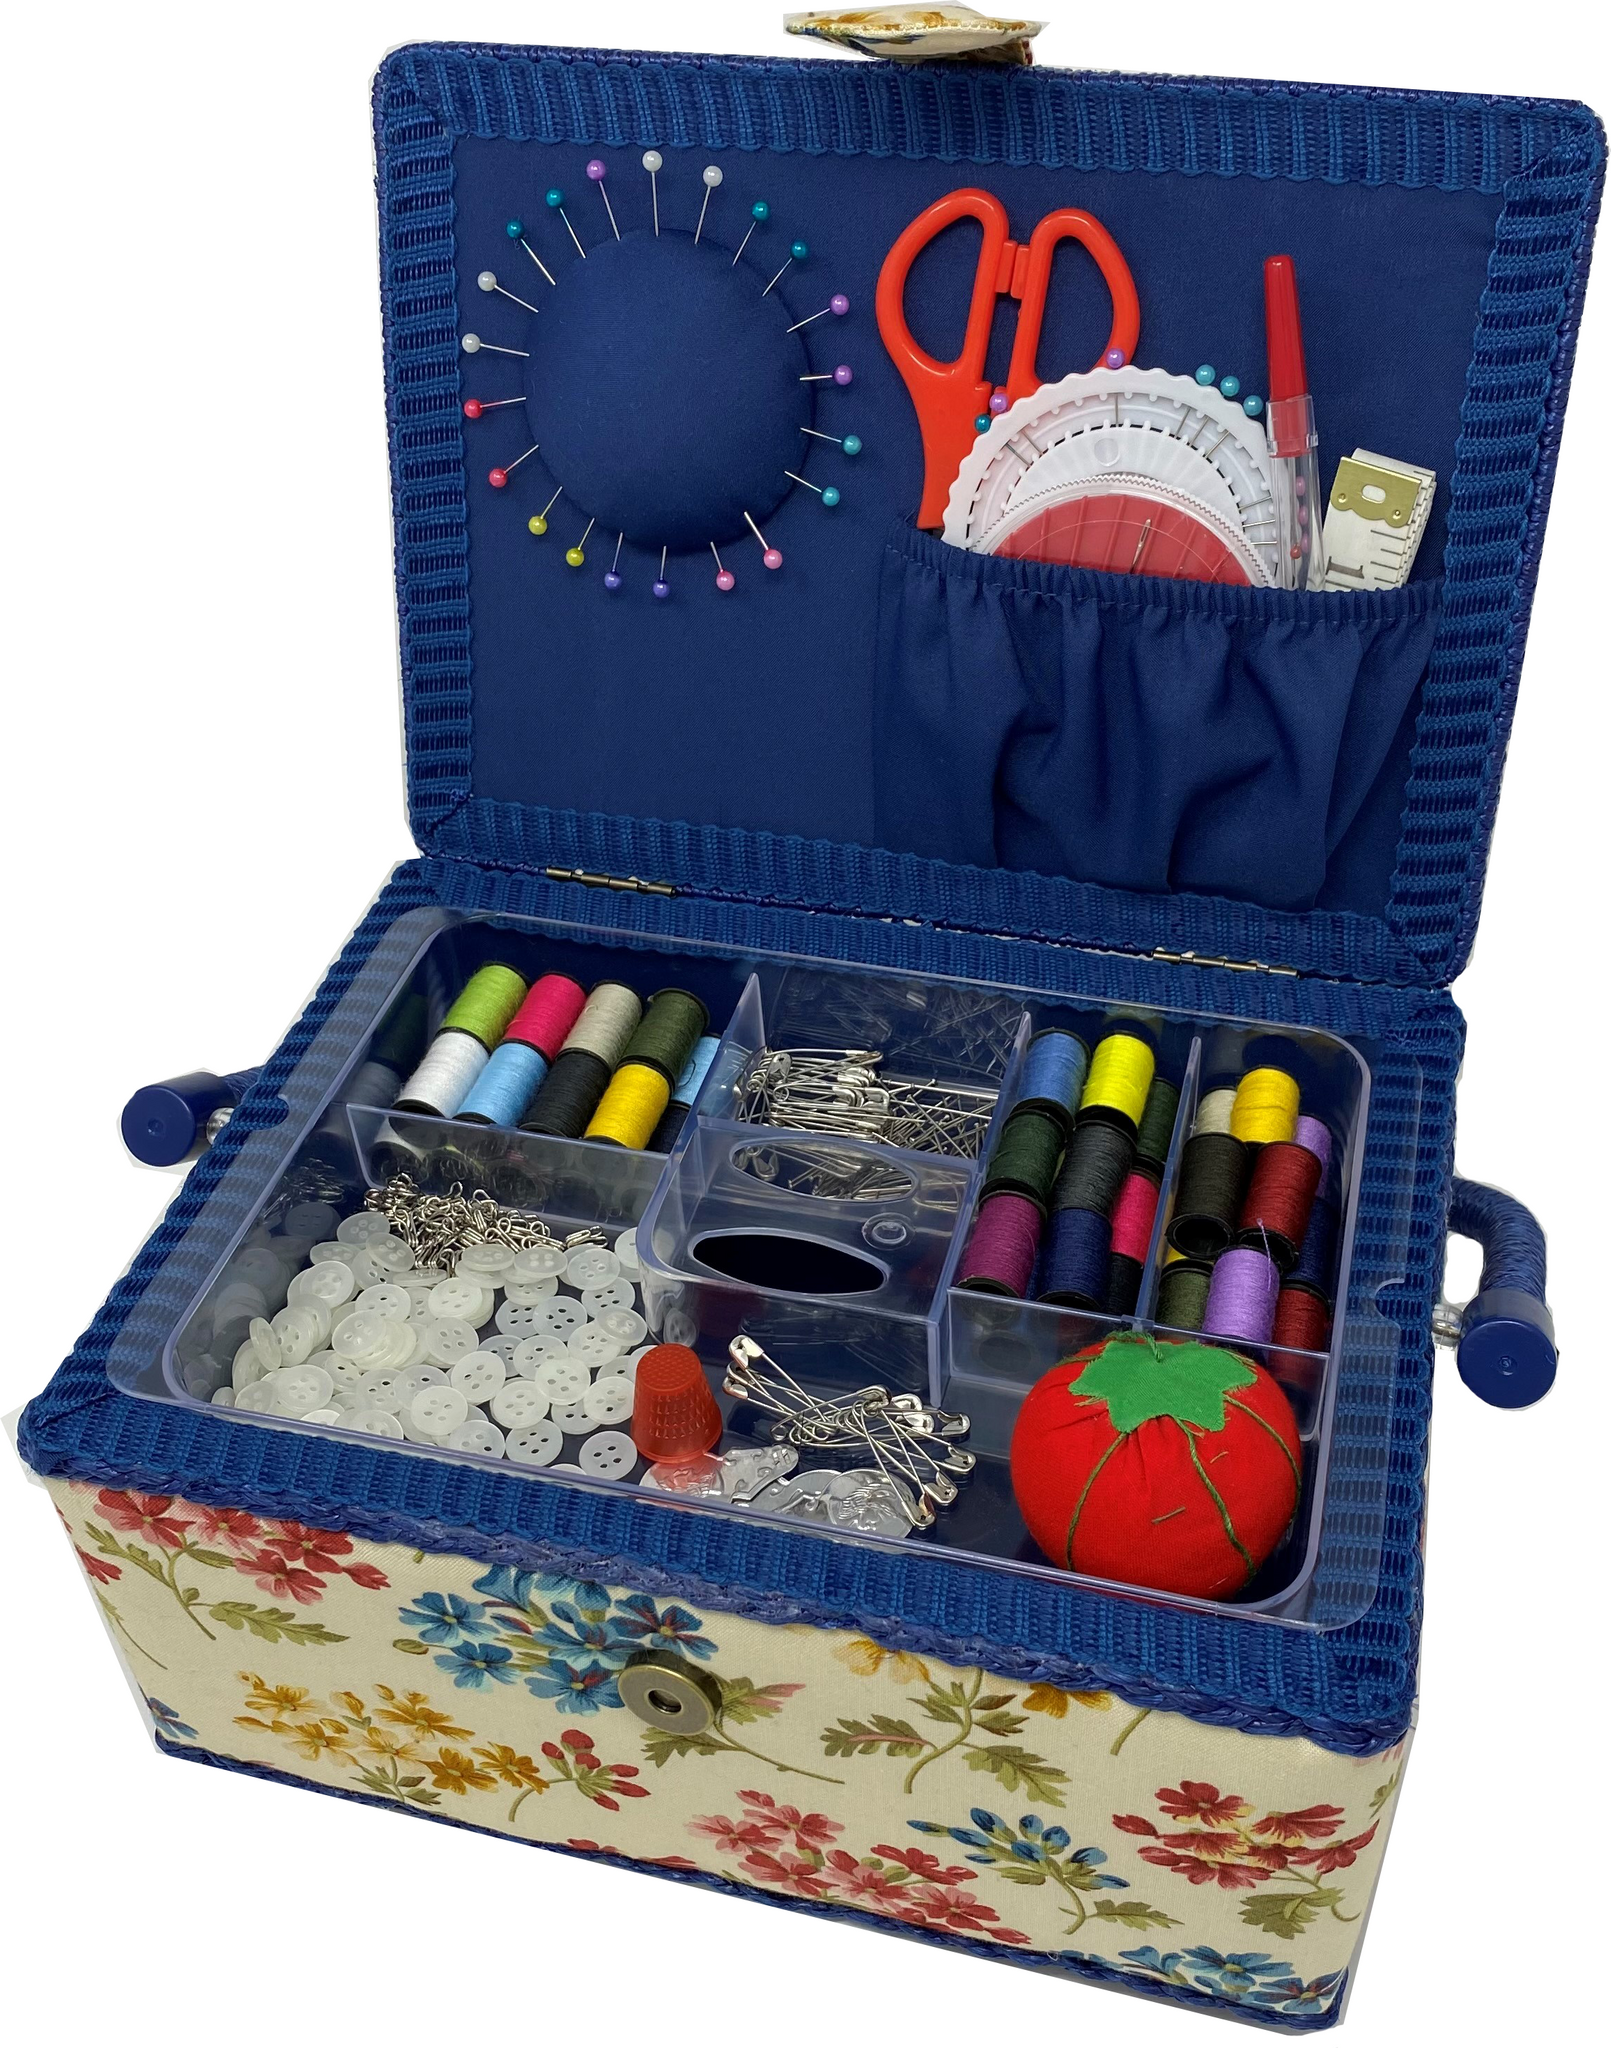 Luxury Craft Storage with Deluxe Craft Sewing Kit - Fairfield Blue